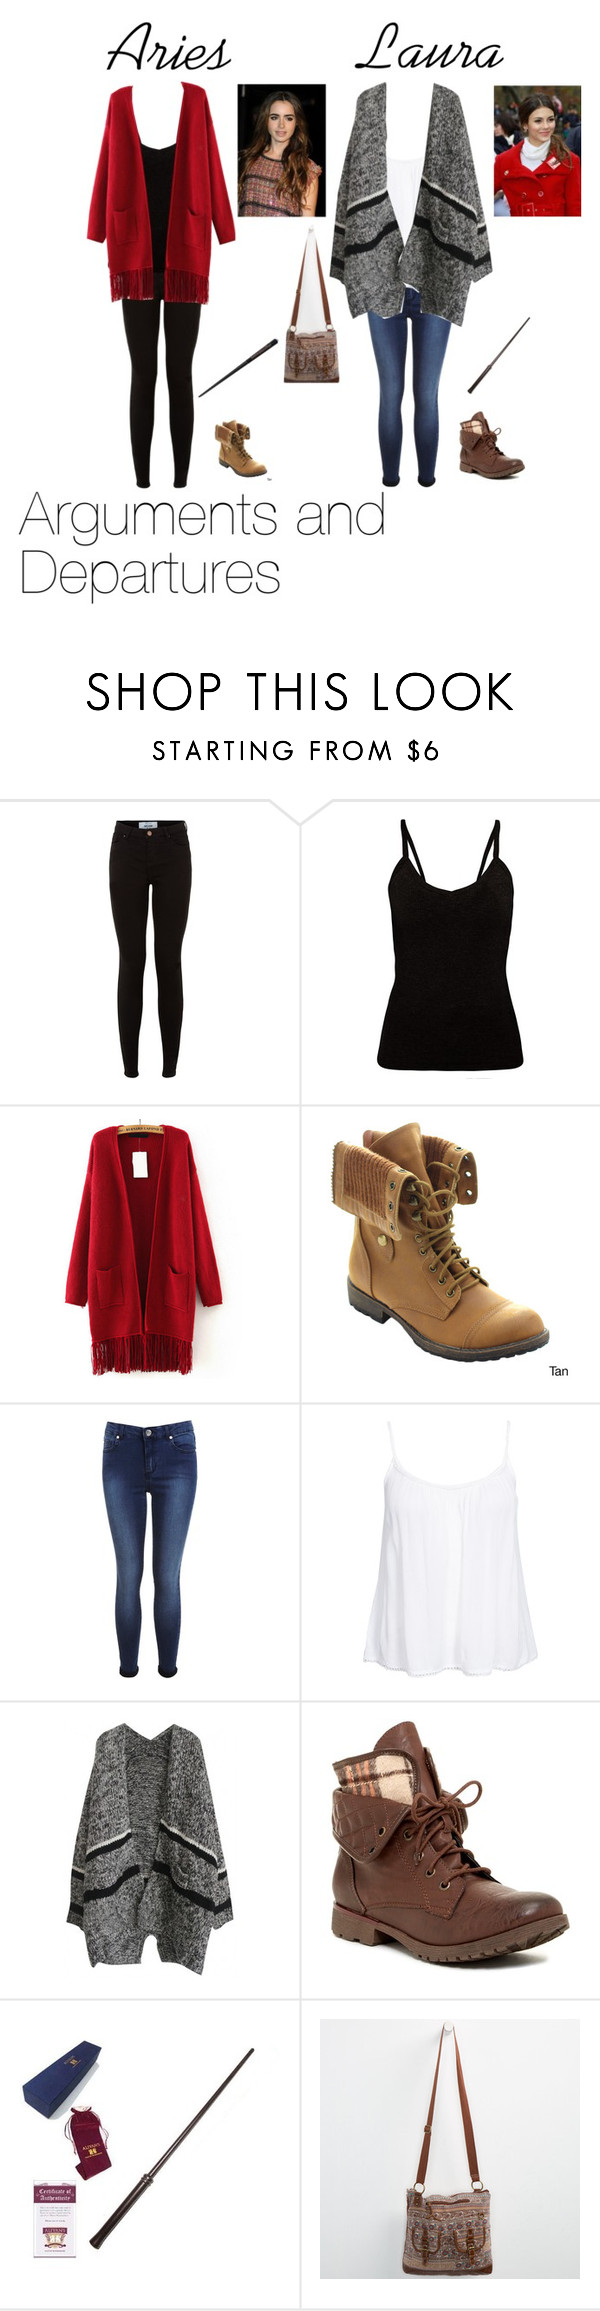 """""""Arguments and Departures"""" by imagineeee ❤ liked on Polyvore featuring New Look, Nature Breeze, Miss Selfridge and Rock & Candy"""